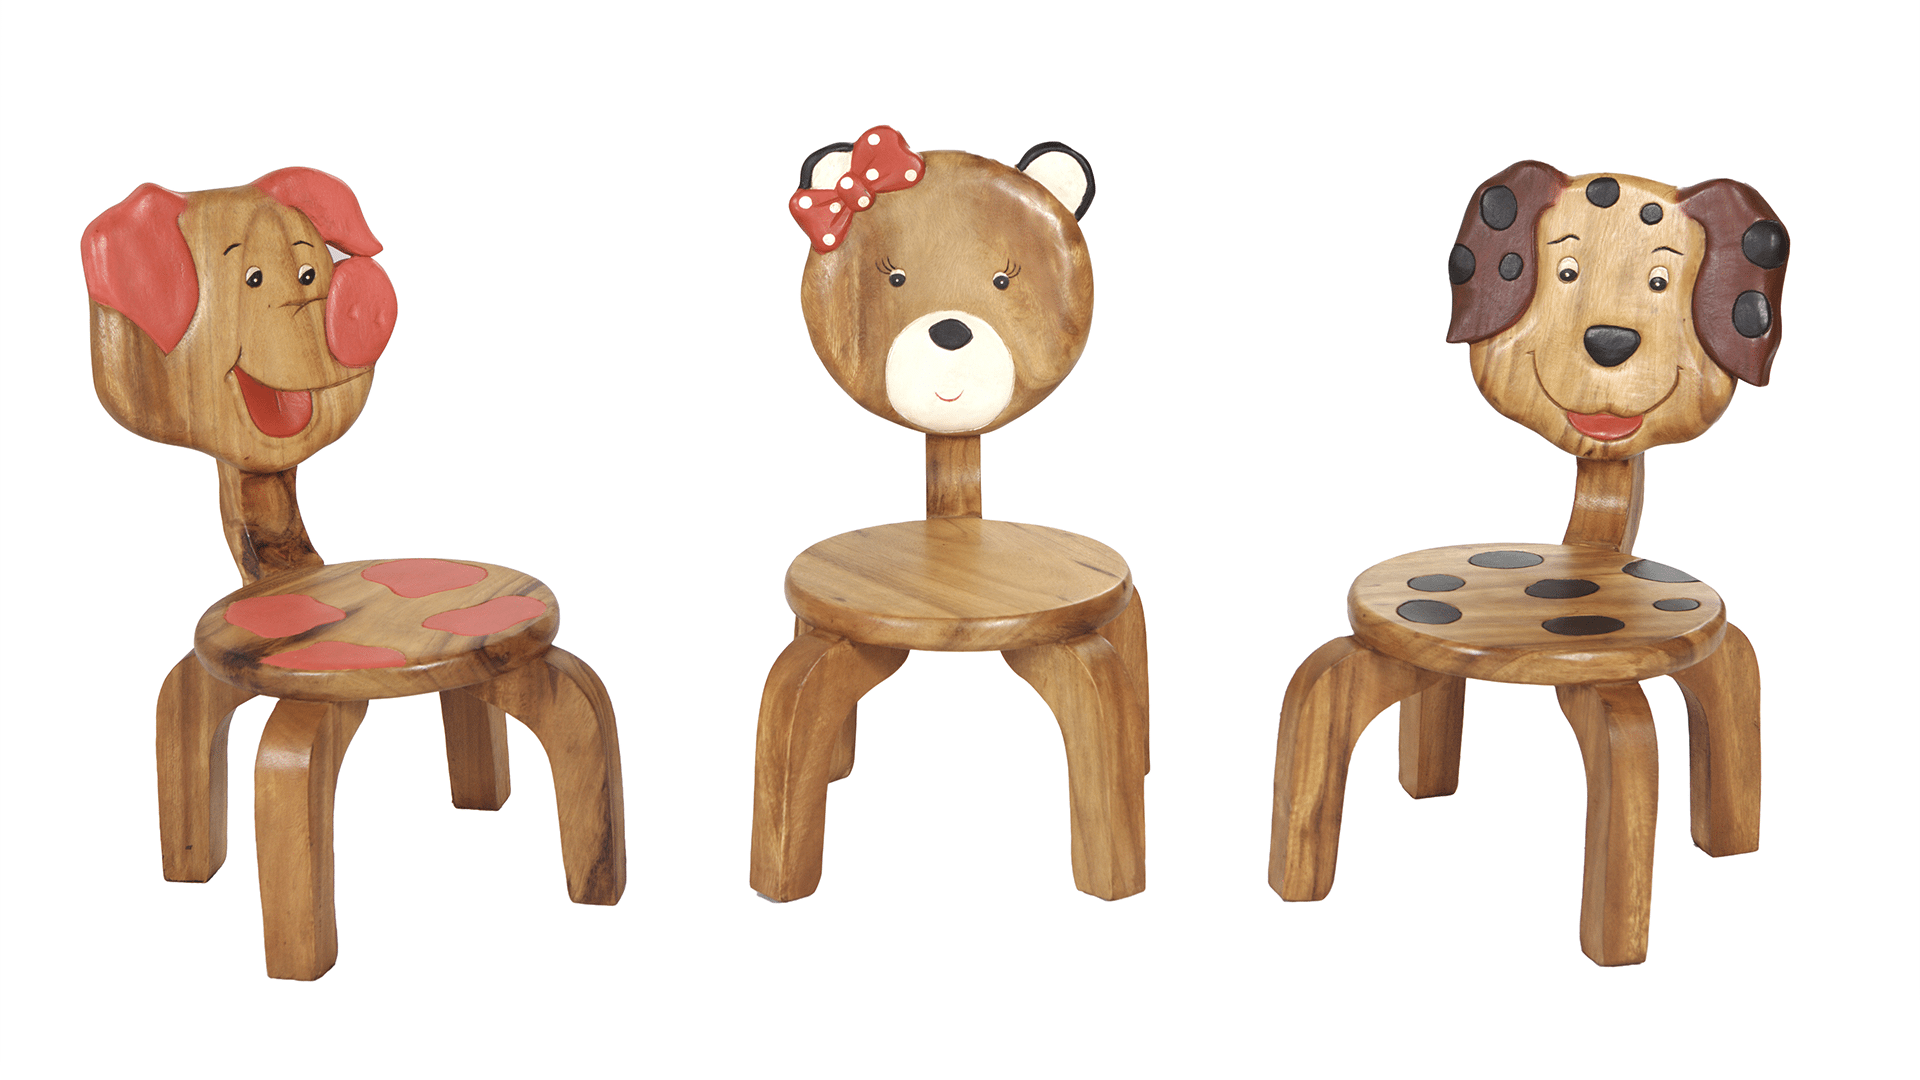 Hand crafted childrens wooden chairs in numerous designs